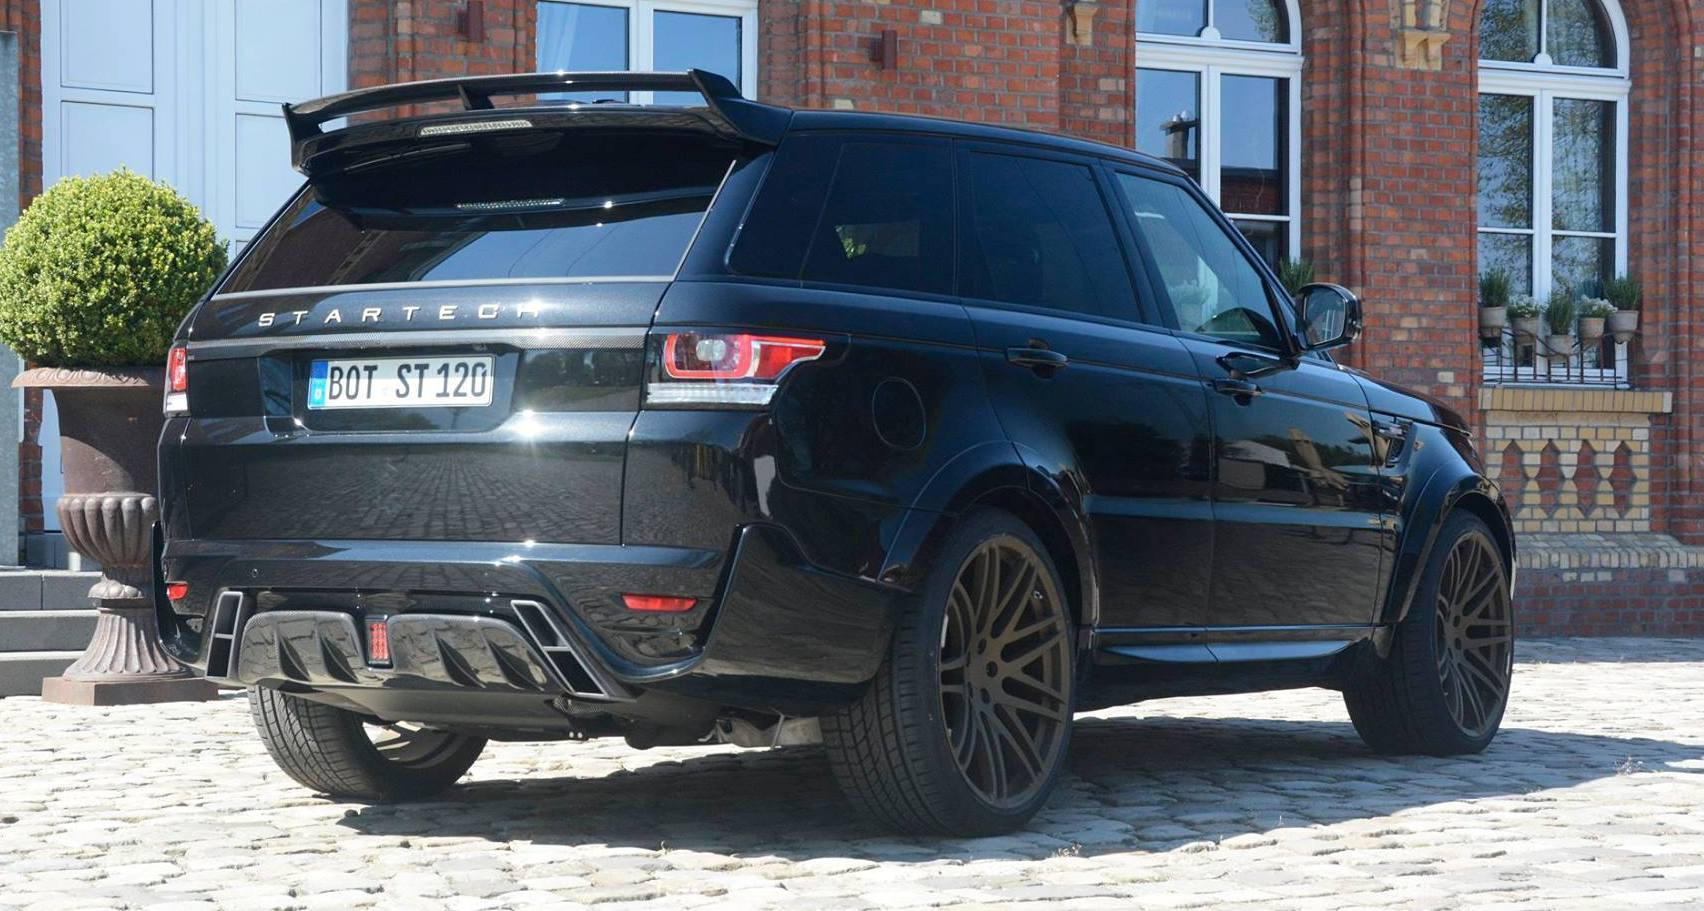 2014 range rover sport startech widebody on 23 inch wheels looks amazing. Black Bedroom Furniture Sets. Home Design Ideas